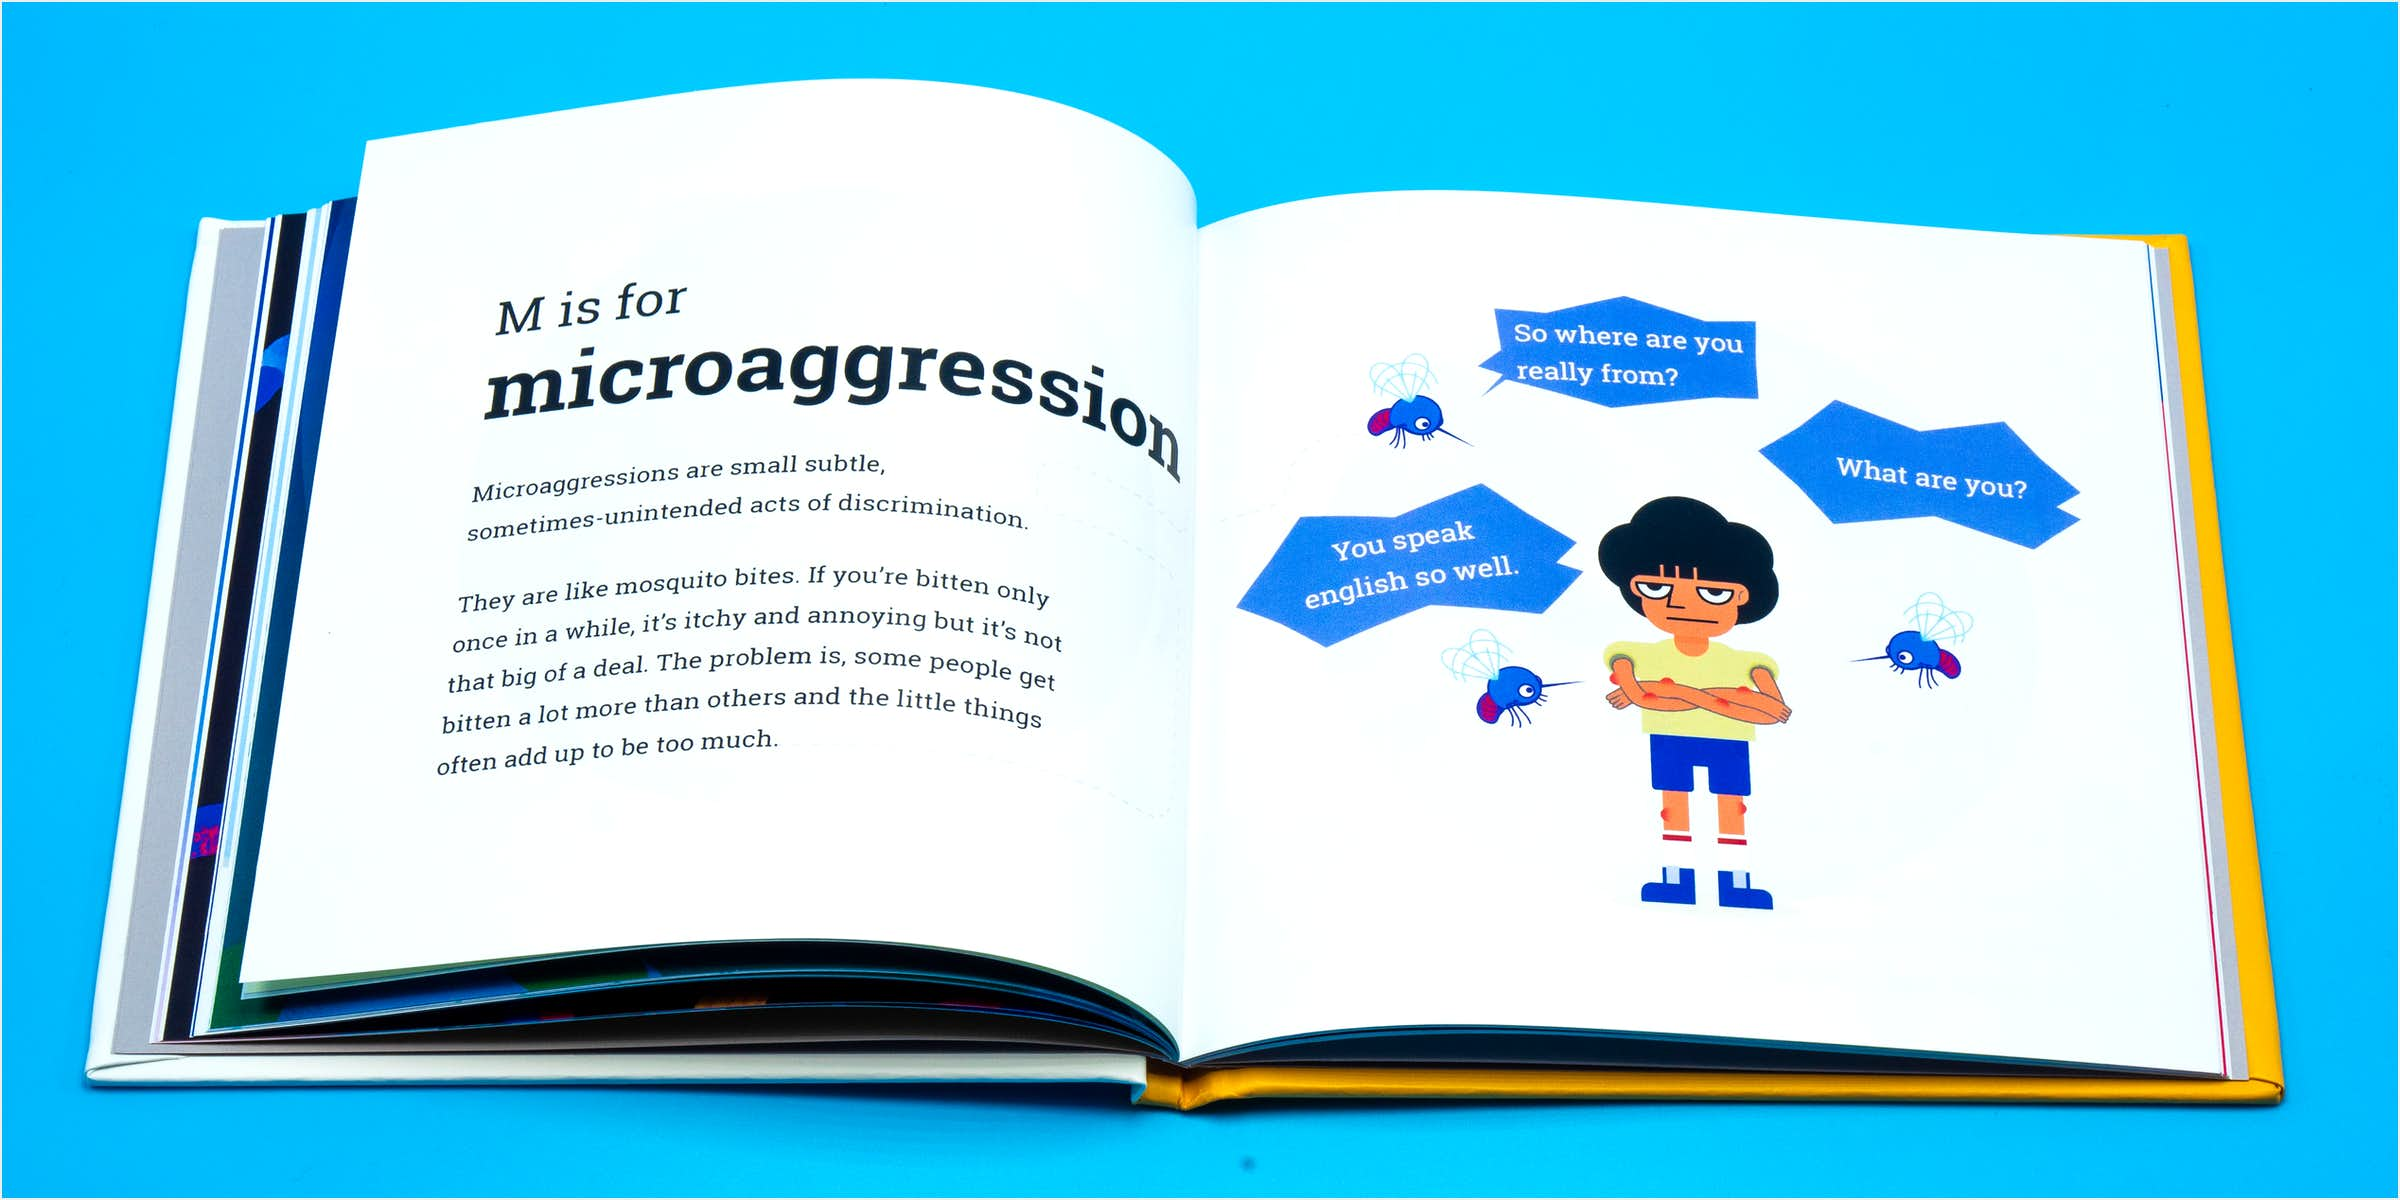 M is for Microaggression